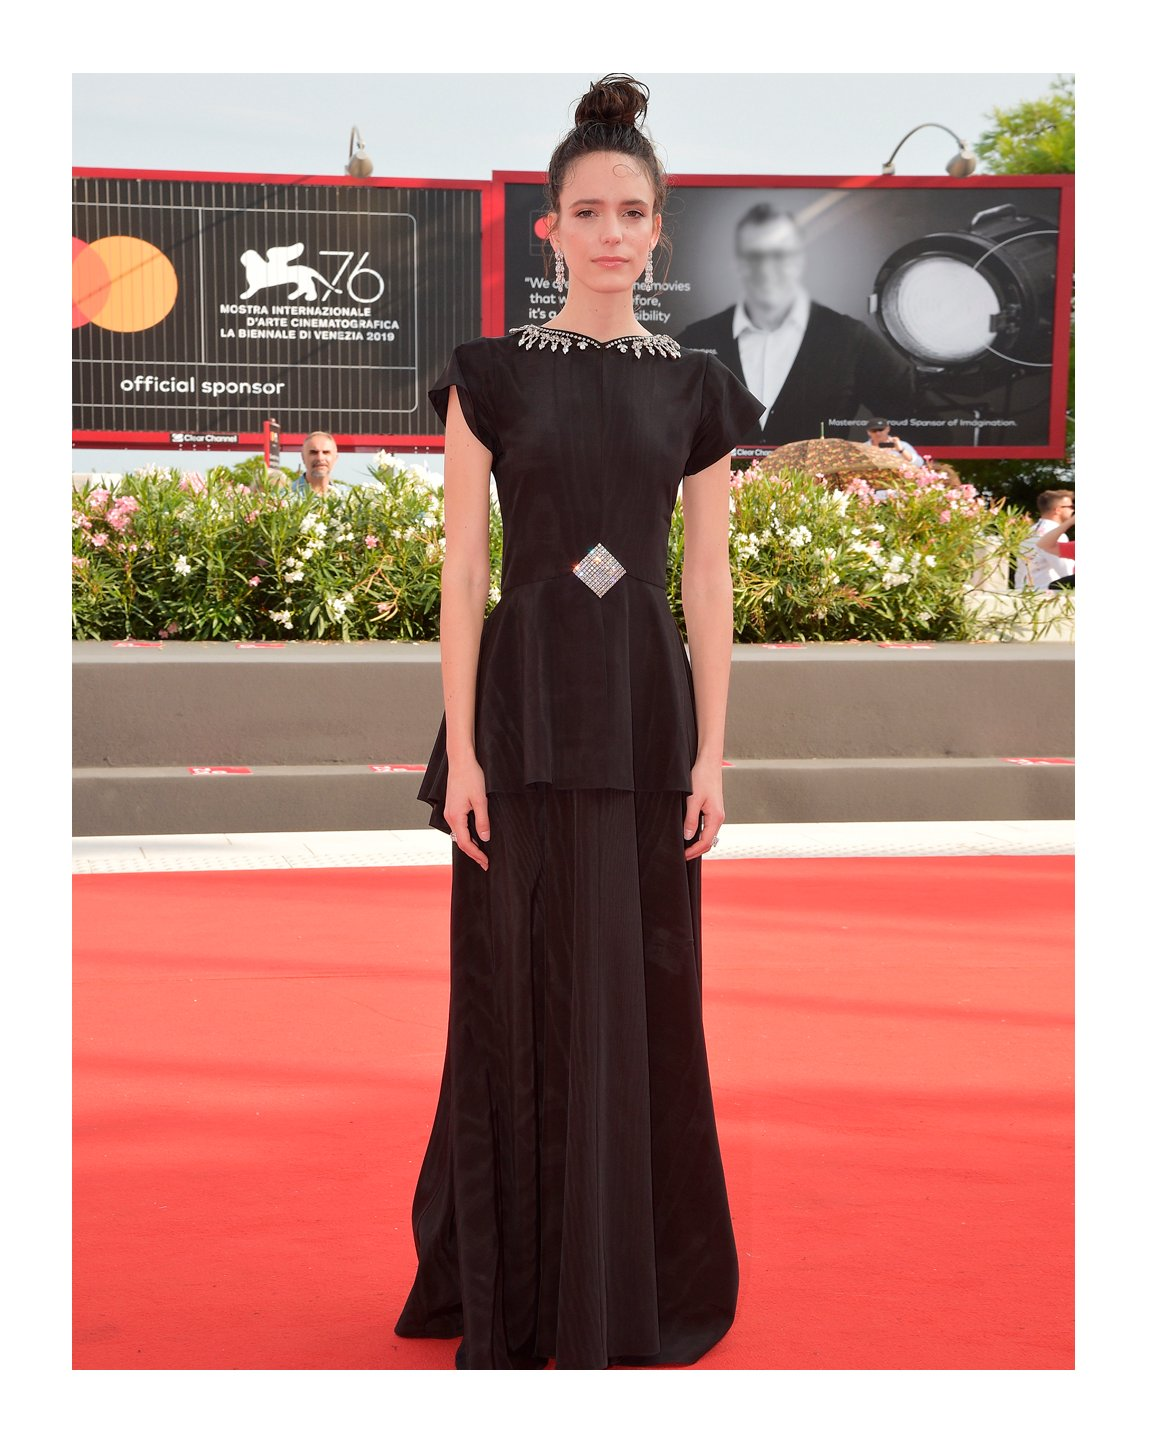 Attending the screening of 'Ji Yuan Tai Qi Hao' during the 76th Venice Film Festival, #StacyMartin wore a silk moiré gown with asymmetric skirt and crystal embroidery detail from #GucciCruise20 by #AlessandroMichele. #BiennaleCinema2019 #Venezia76 @la_Biennale https://t.co/xYH9R4o2pN